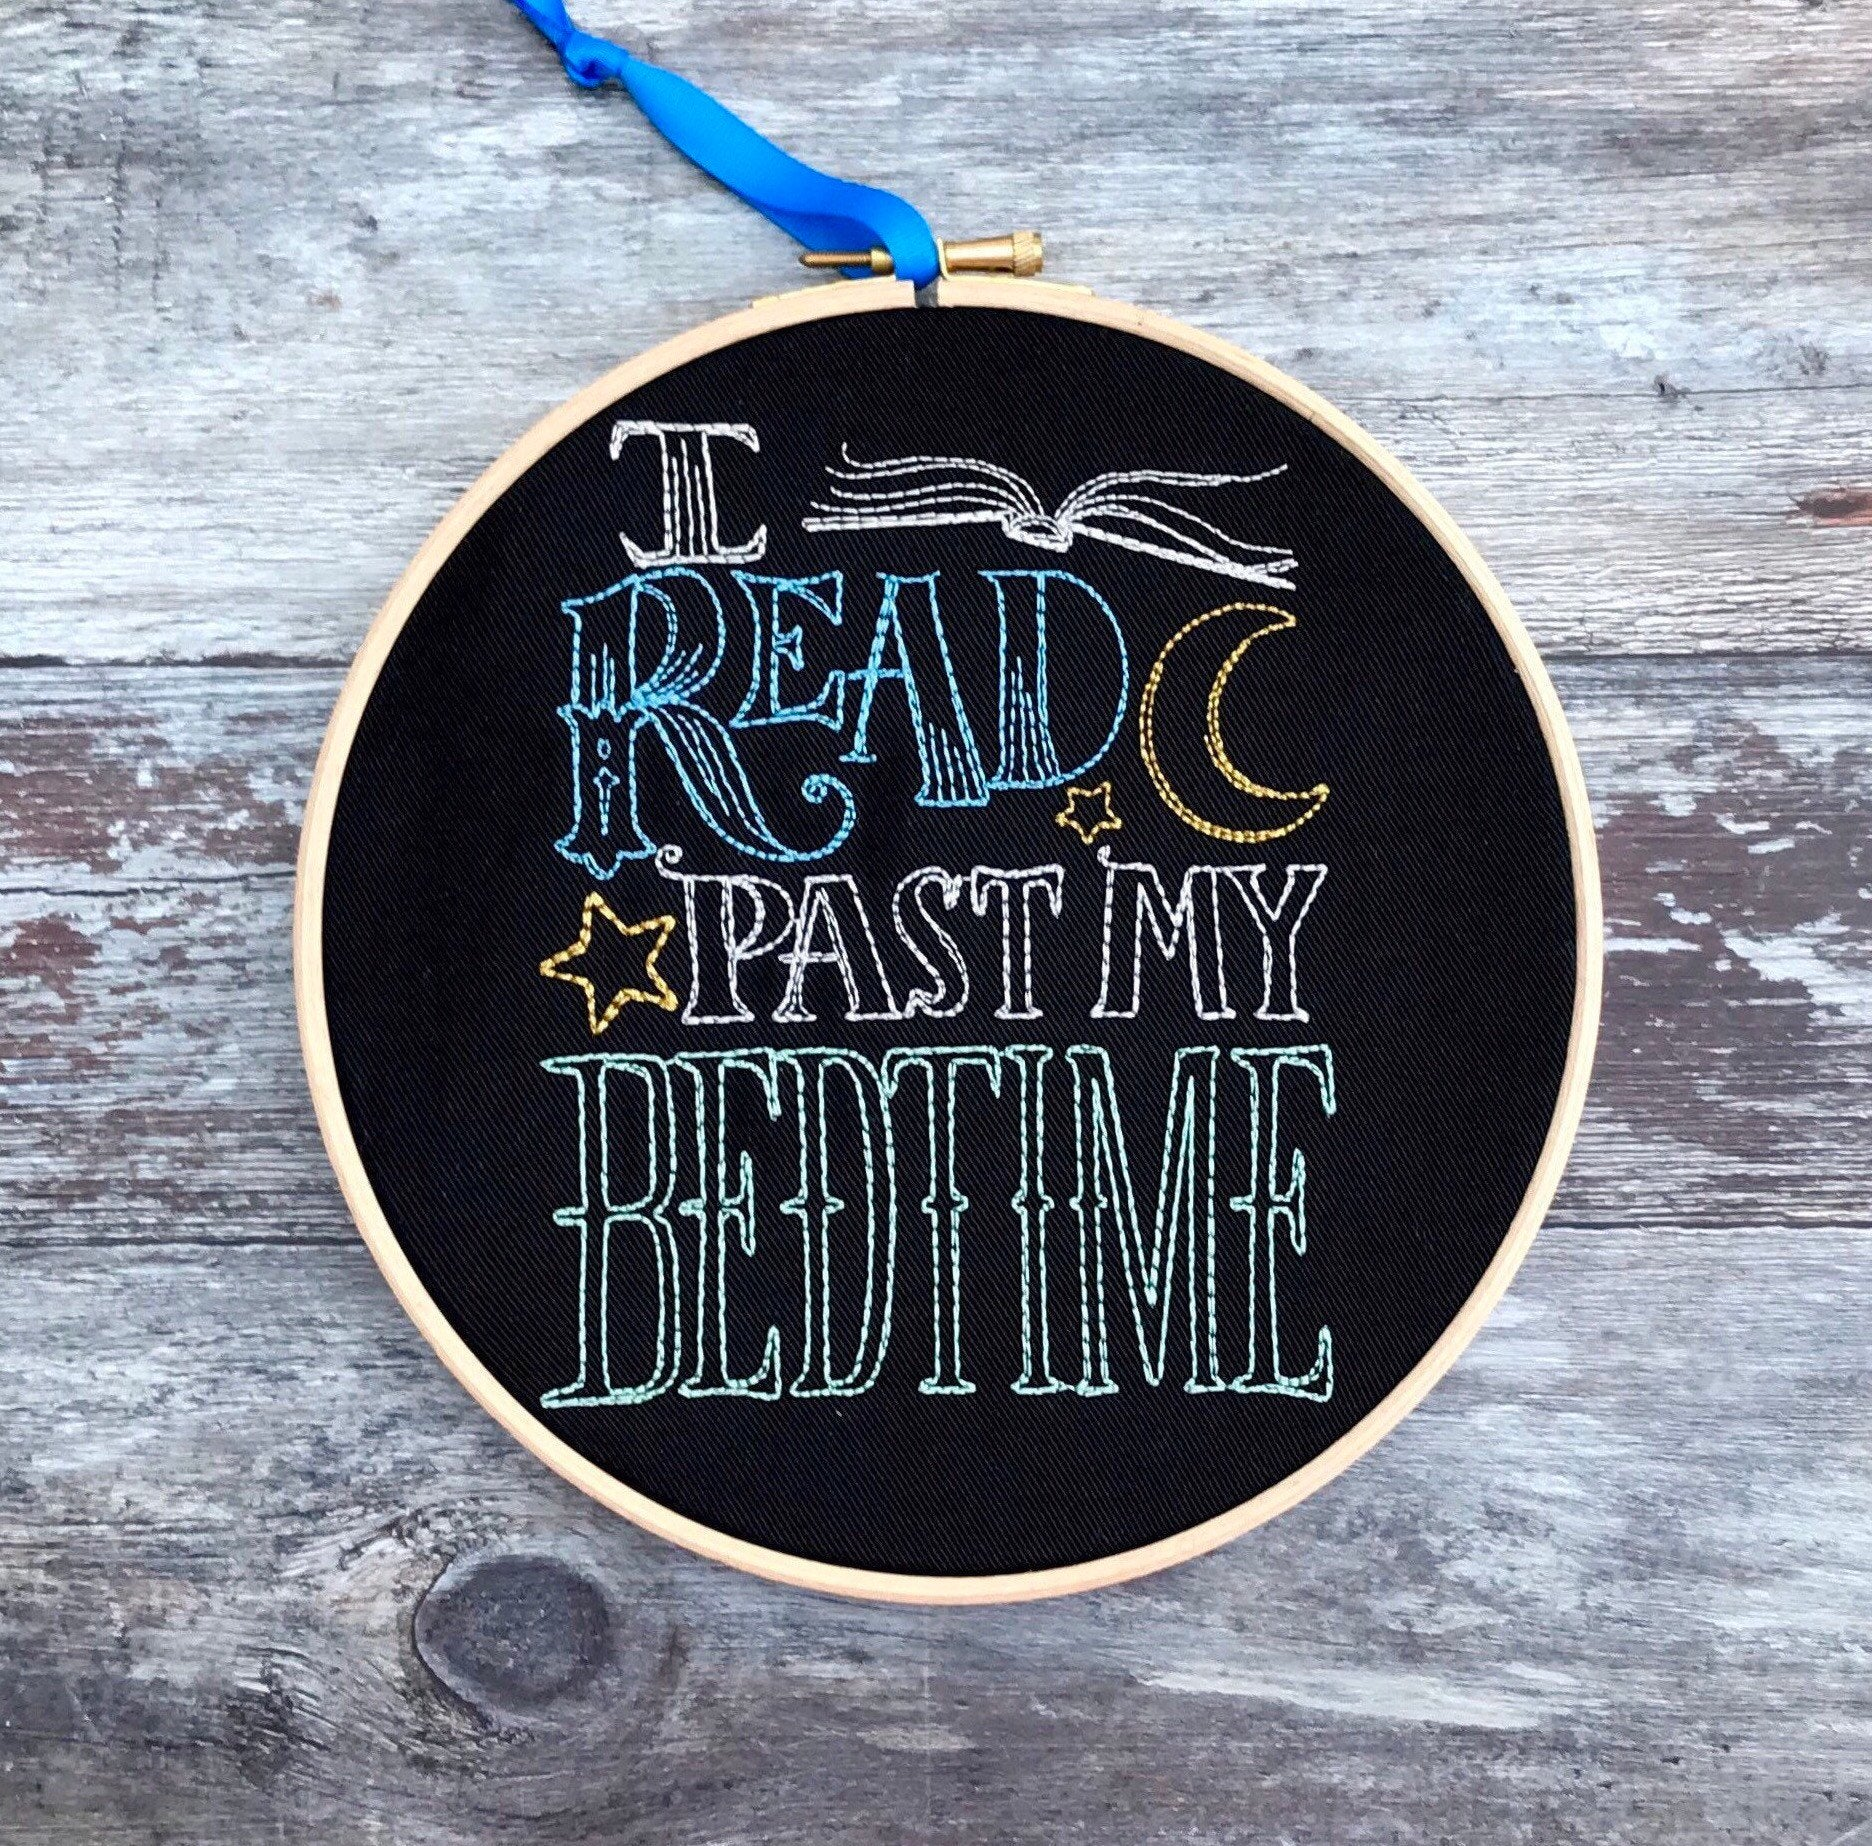 I read past my bedtime, Embroidery hoop art